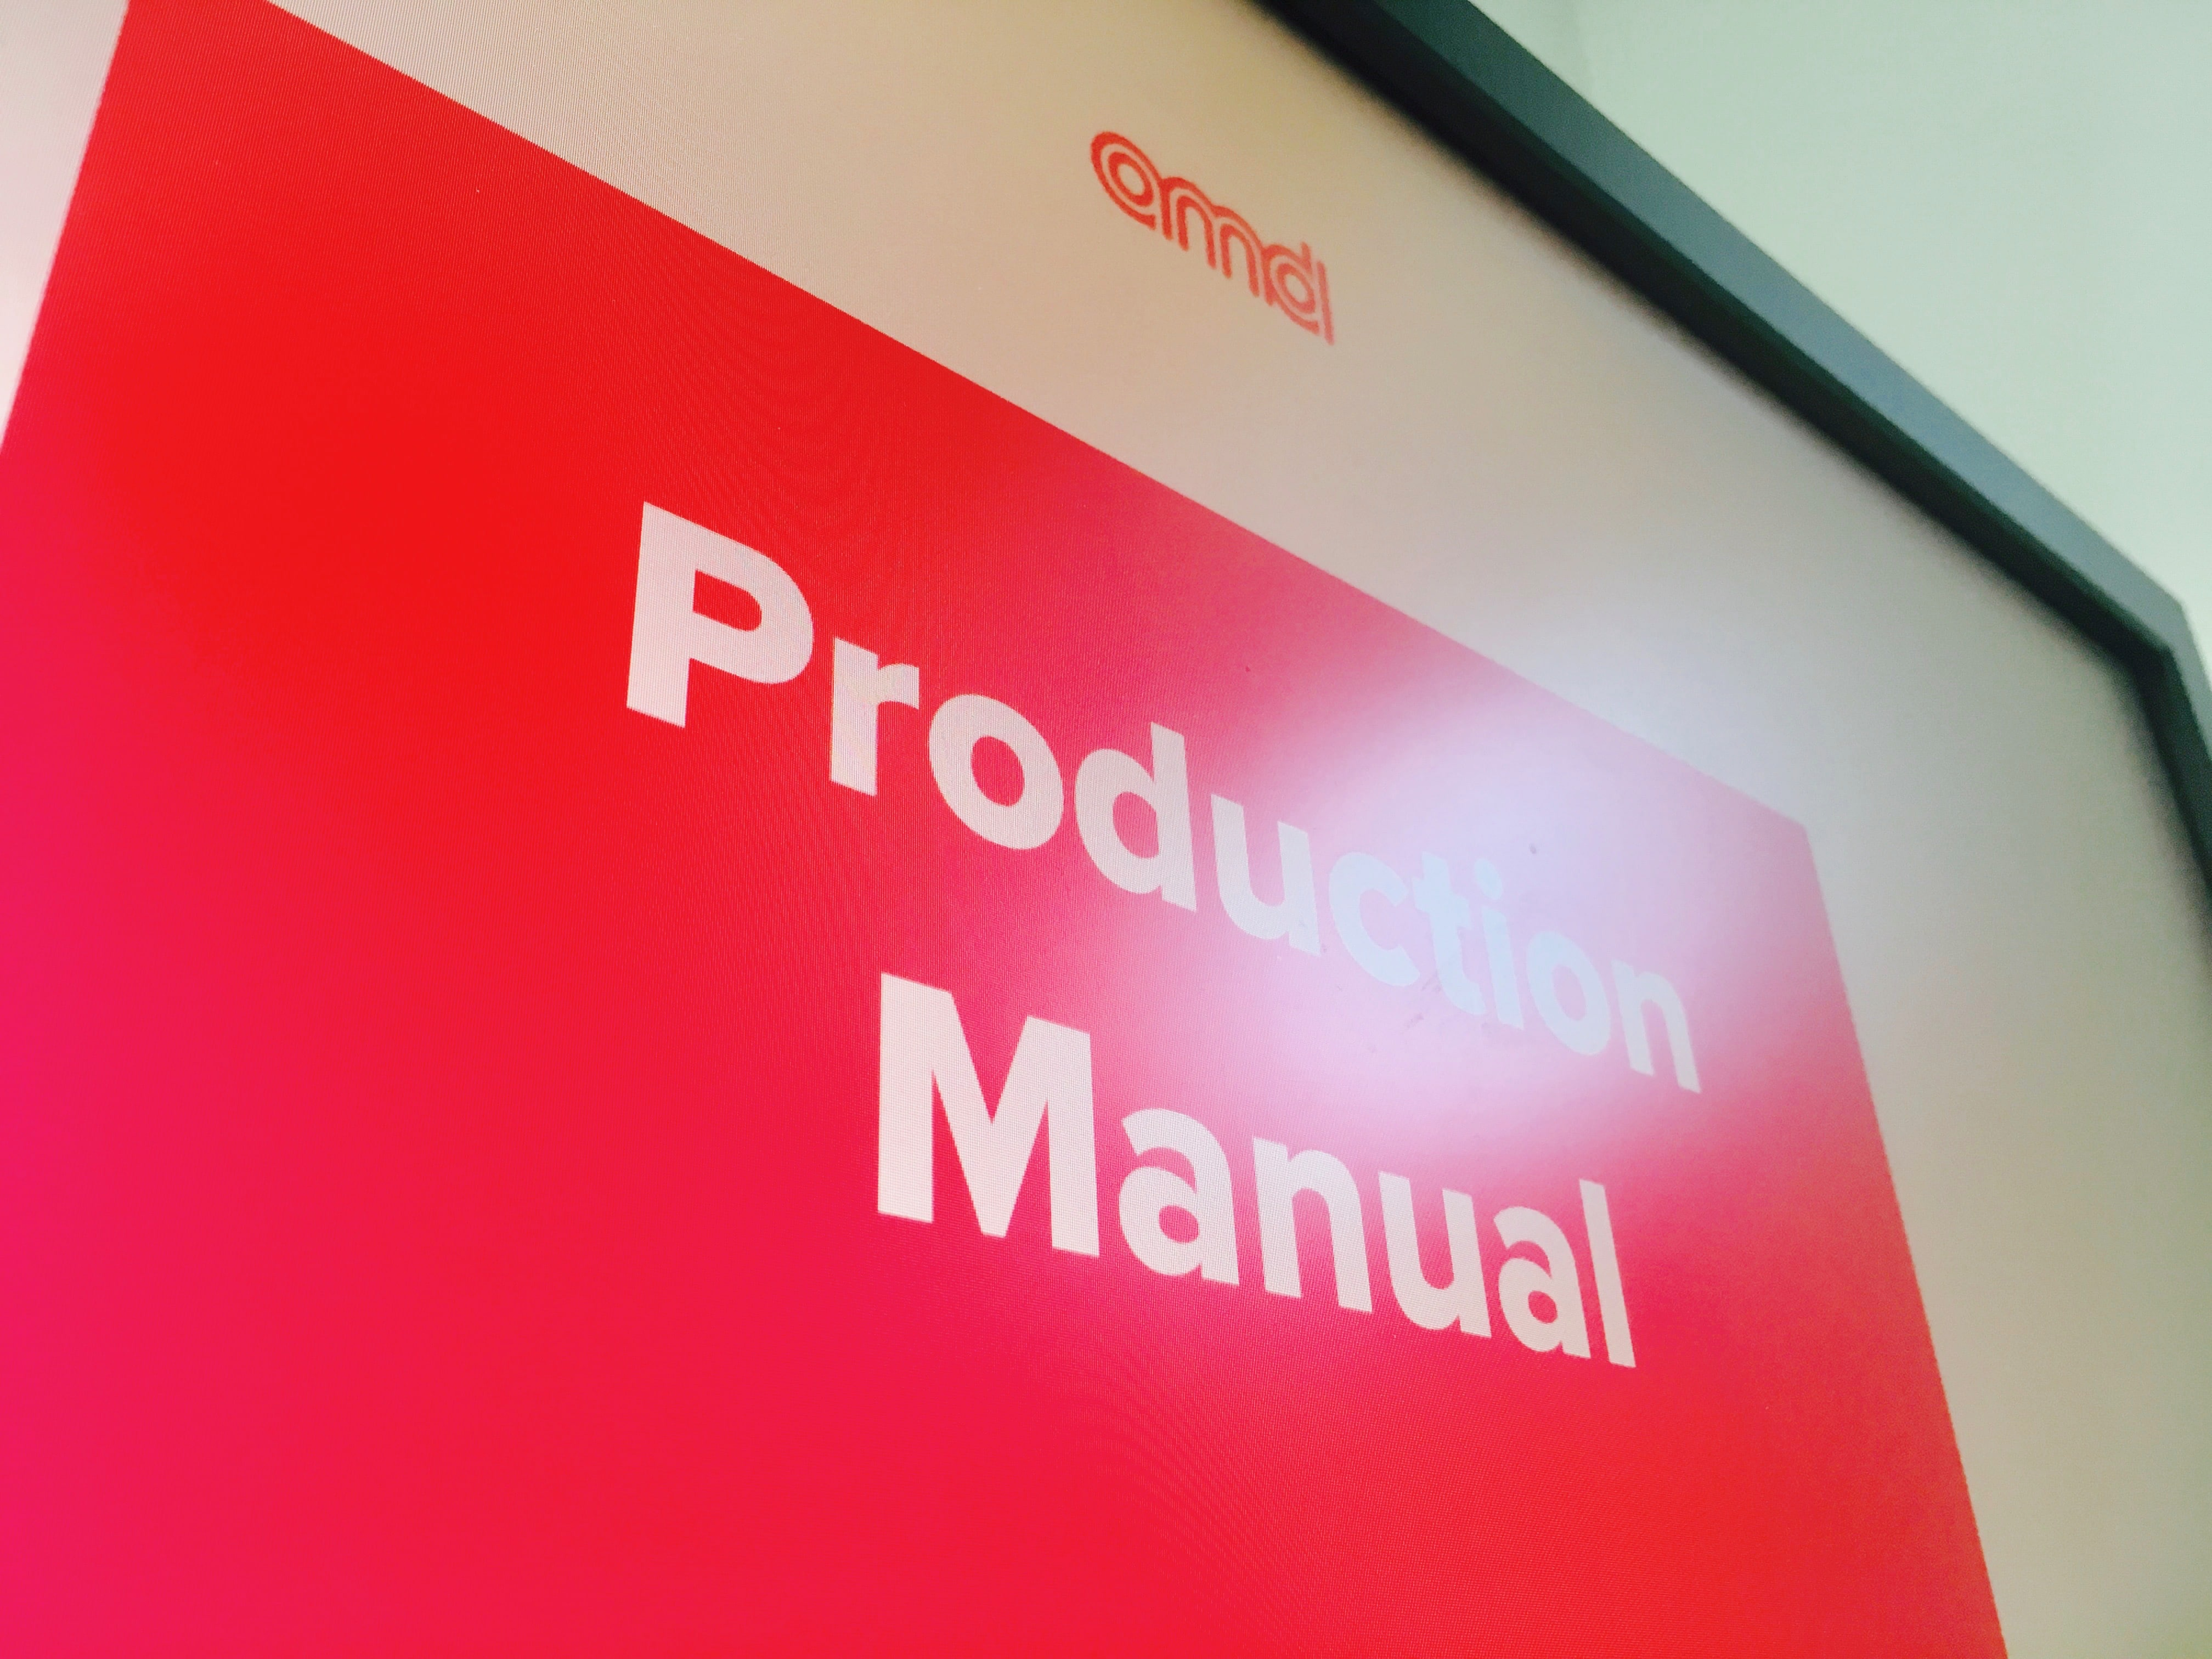 Production Manual v1.0 julki